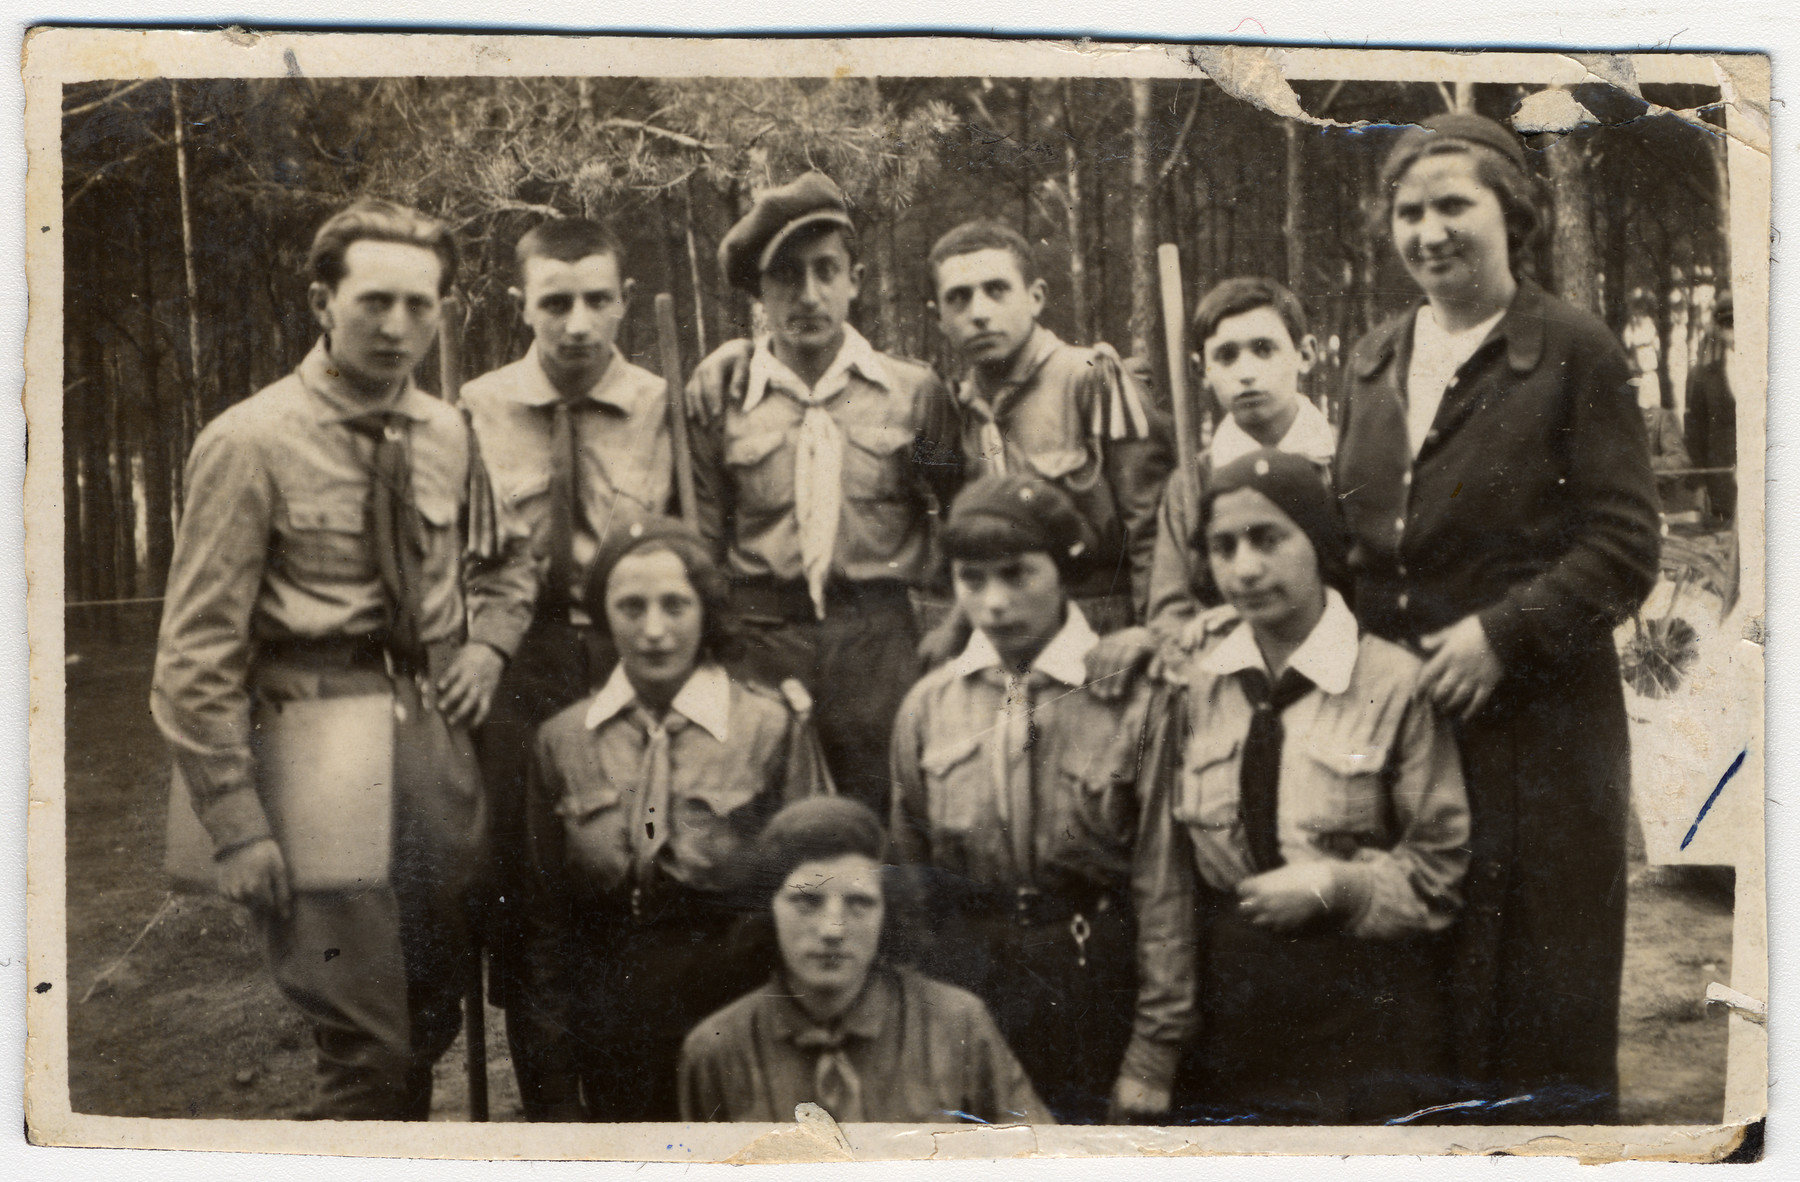 Portrait of a Gordonia Zionist youth group in Dobrzyn.  Among those pictured is Issachar Fater (second row, center).